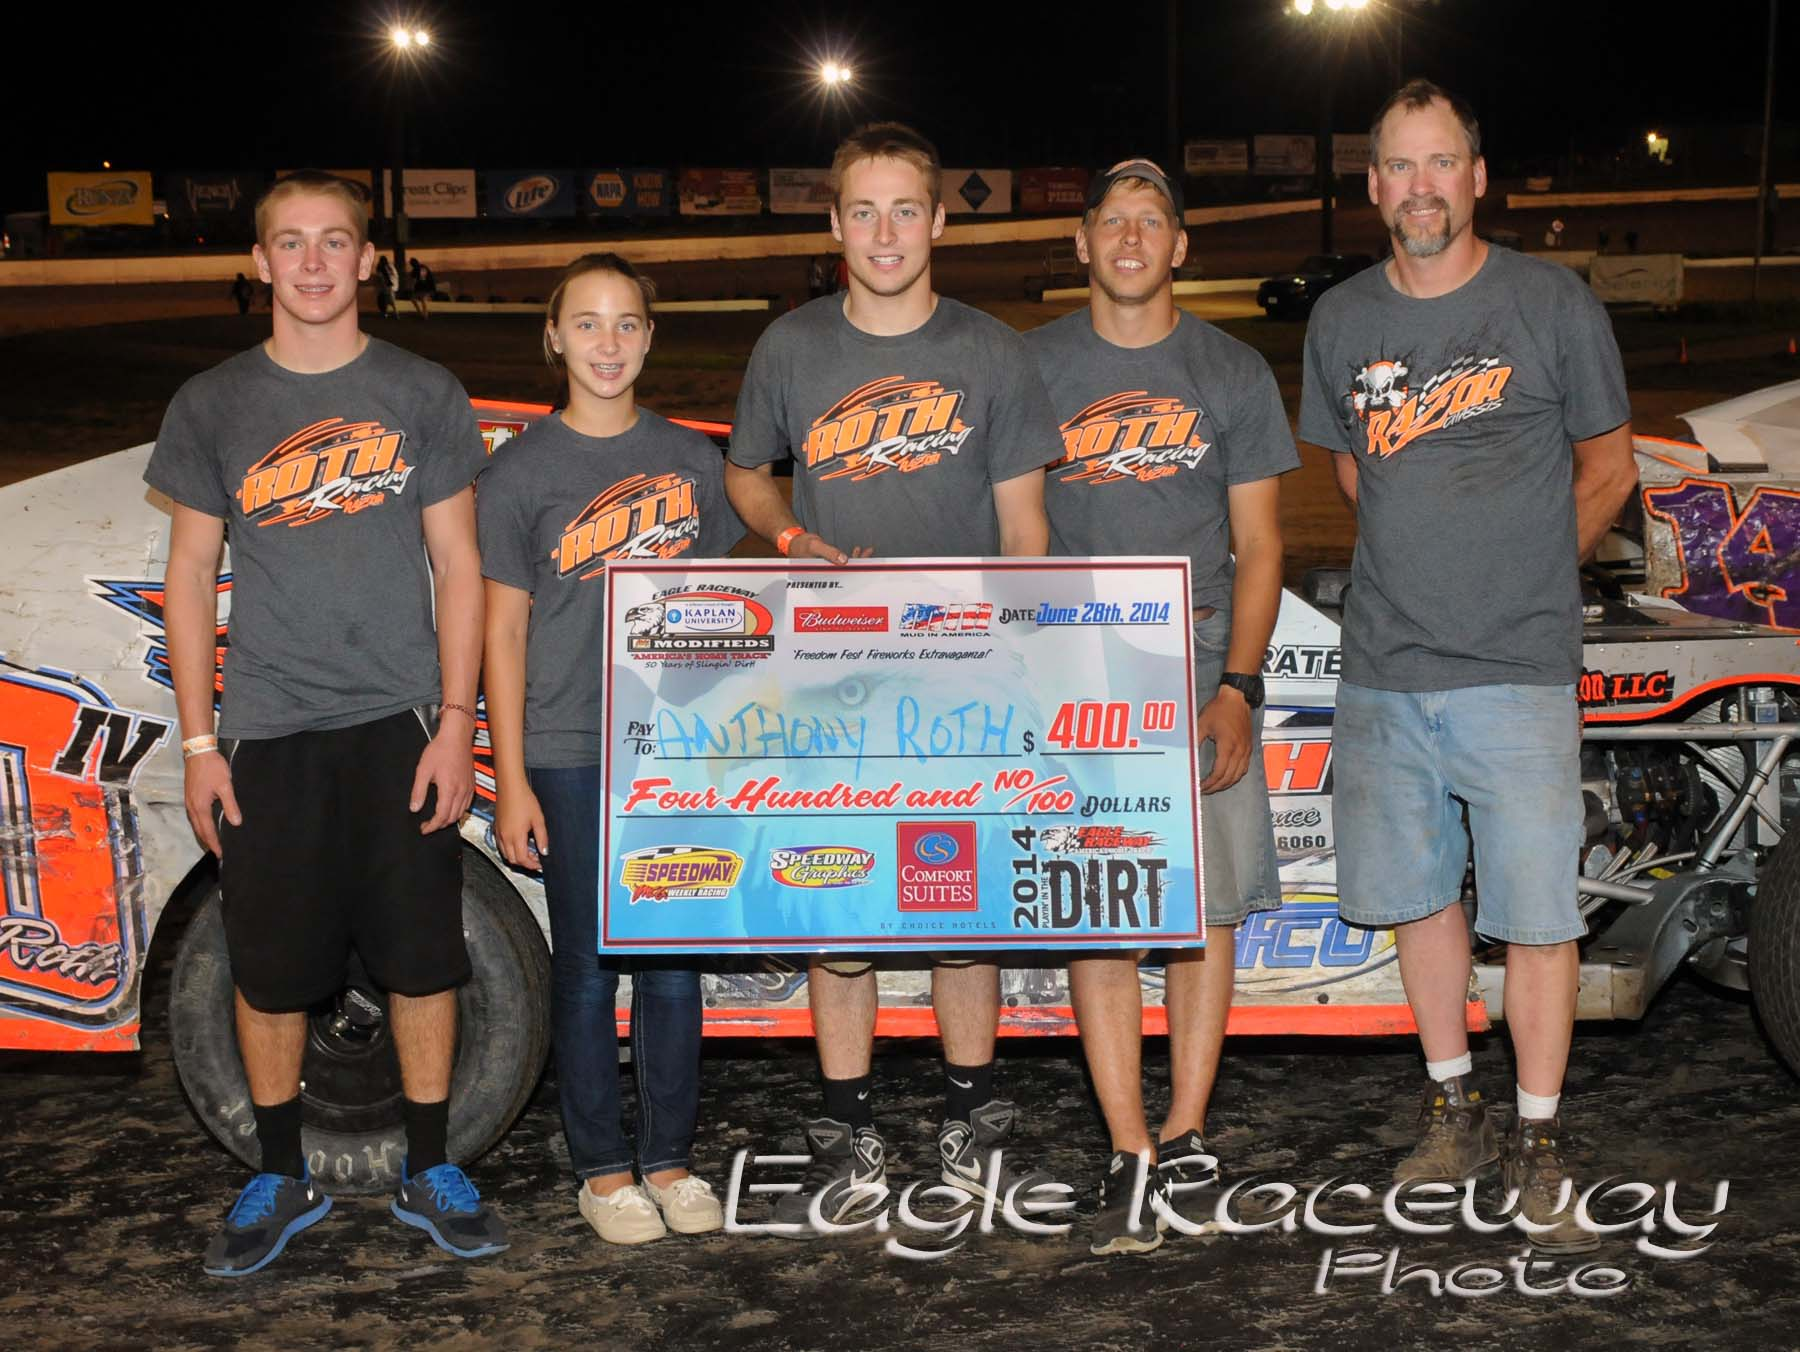 eagle-07-05-14-609-anthony-roth-and-crew-joeorthphotos